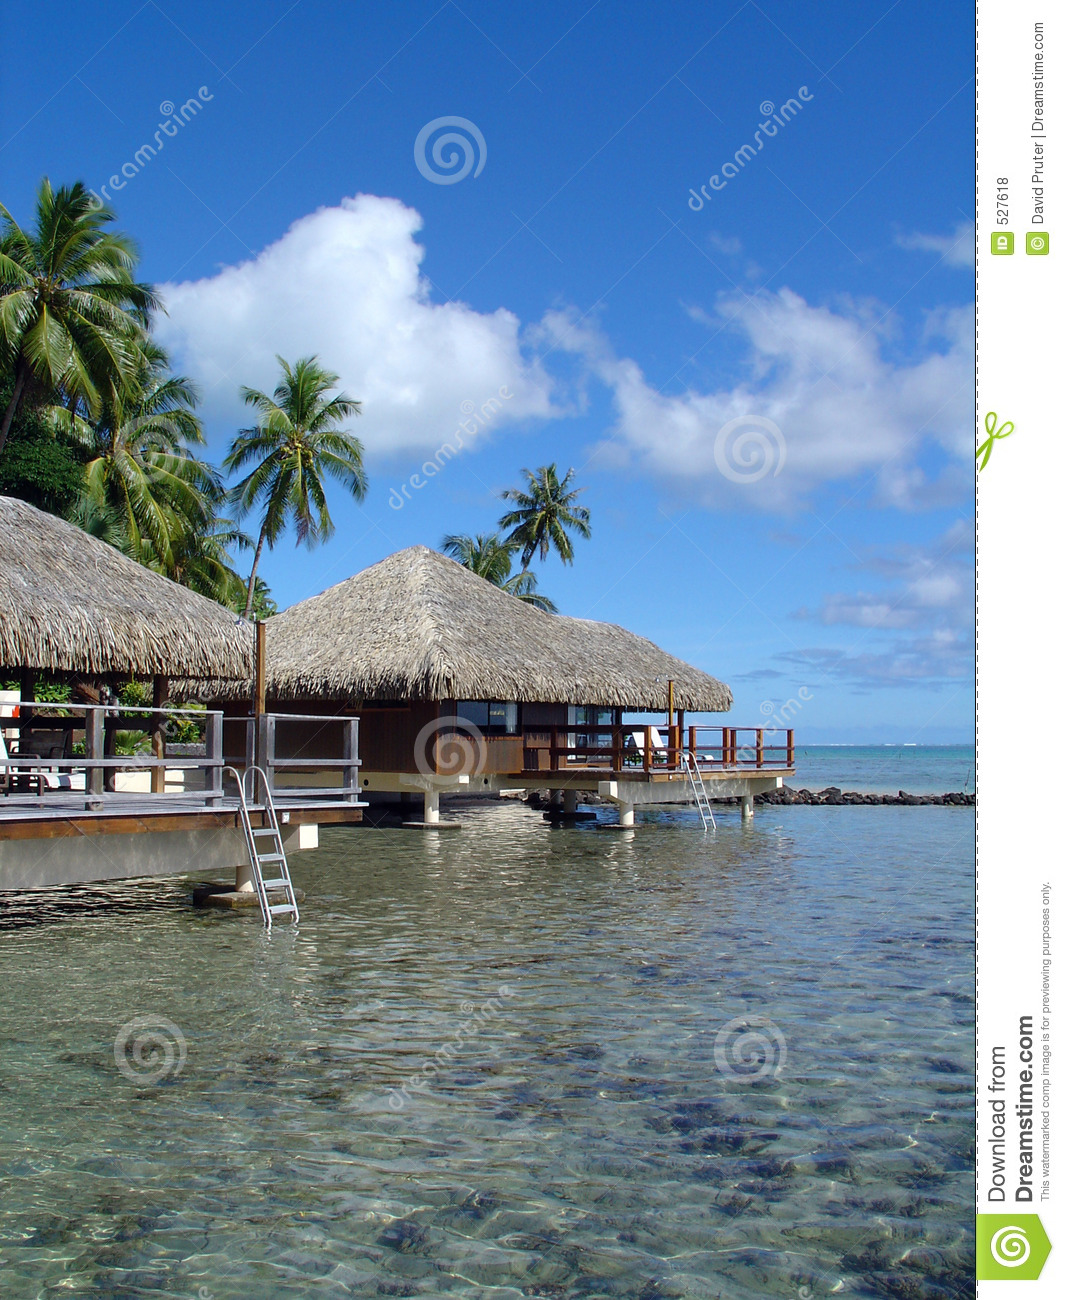 Tahiti Accommodation Over Water Bungalows: Over-Water Bungalows Royalty Free Stock Photos